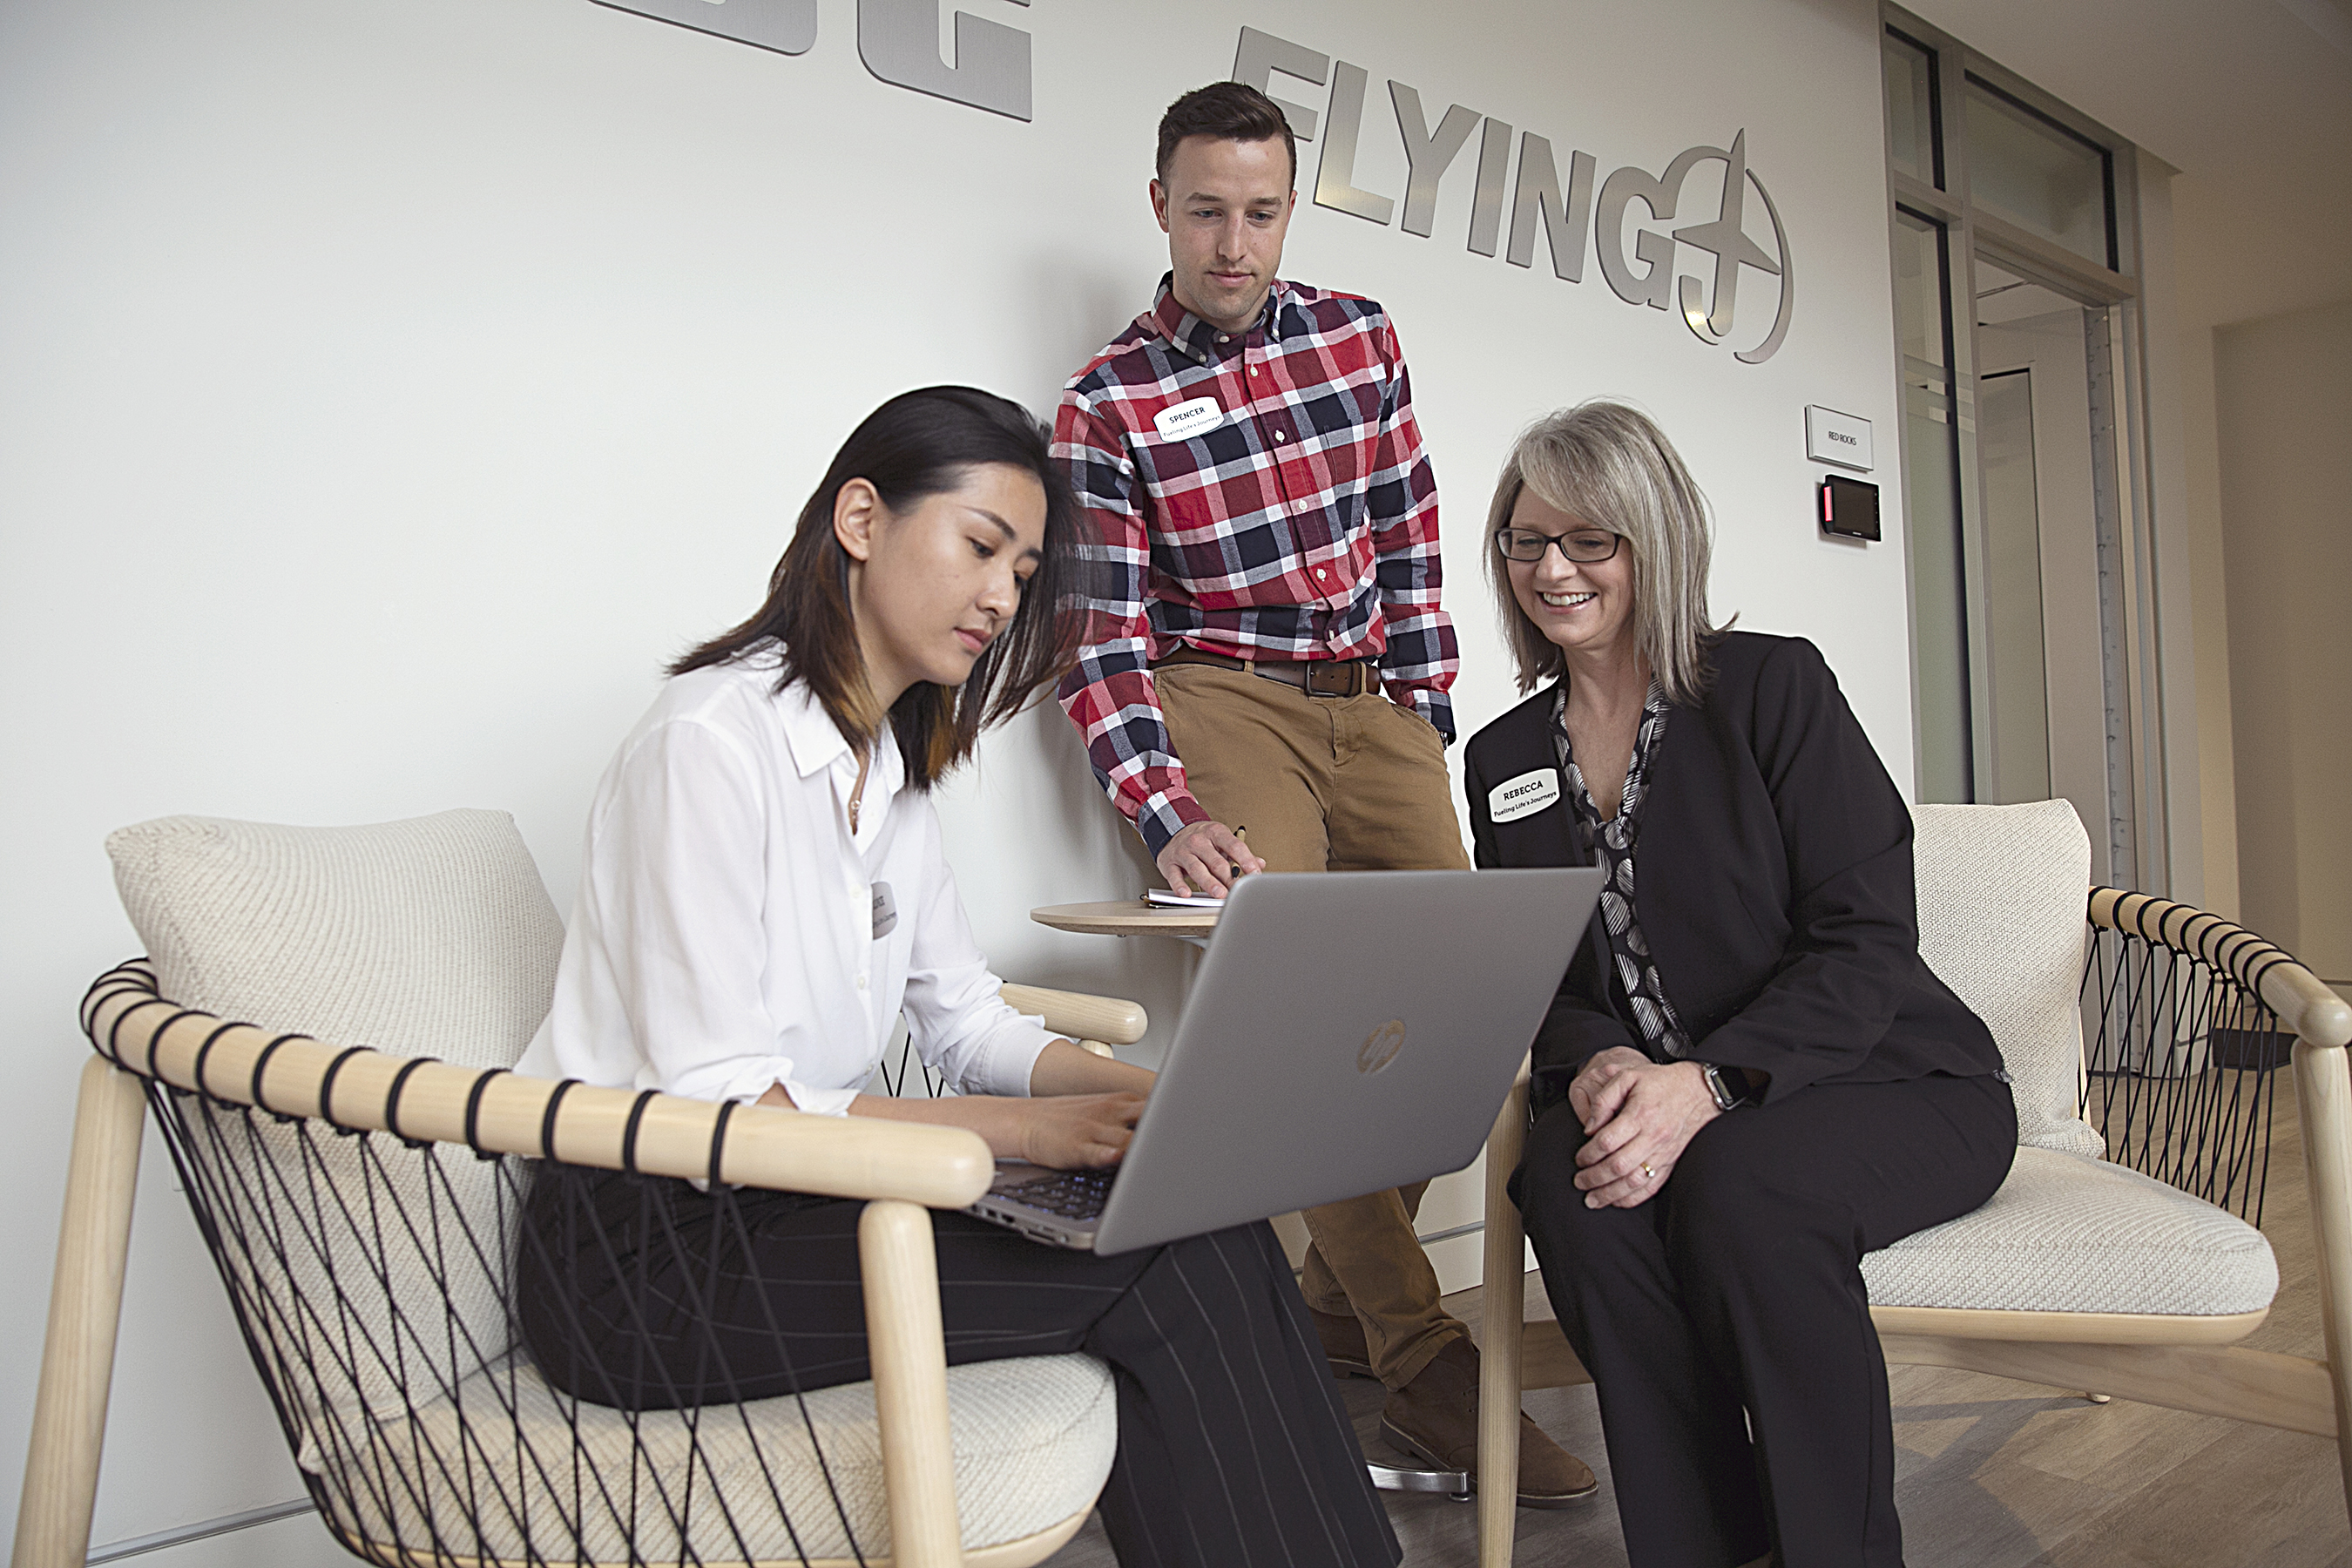 The technology innovation team at Pilot Flying J is growing. We are hiring professionals in technology fields, including mobile developers, data scientists, engineers and more.